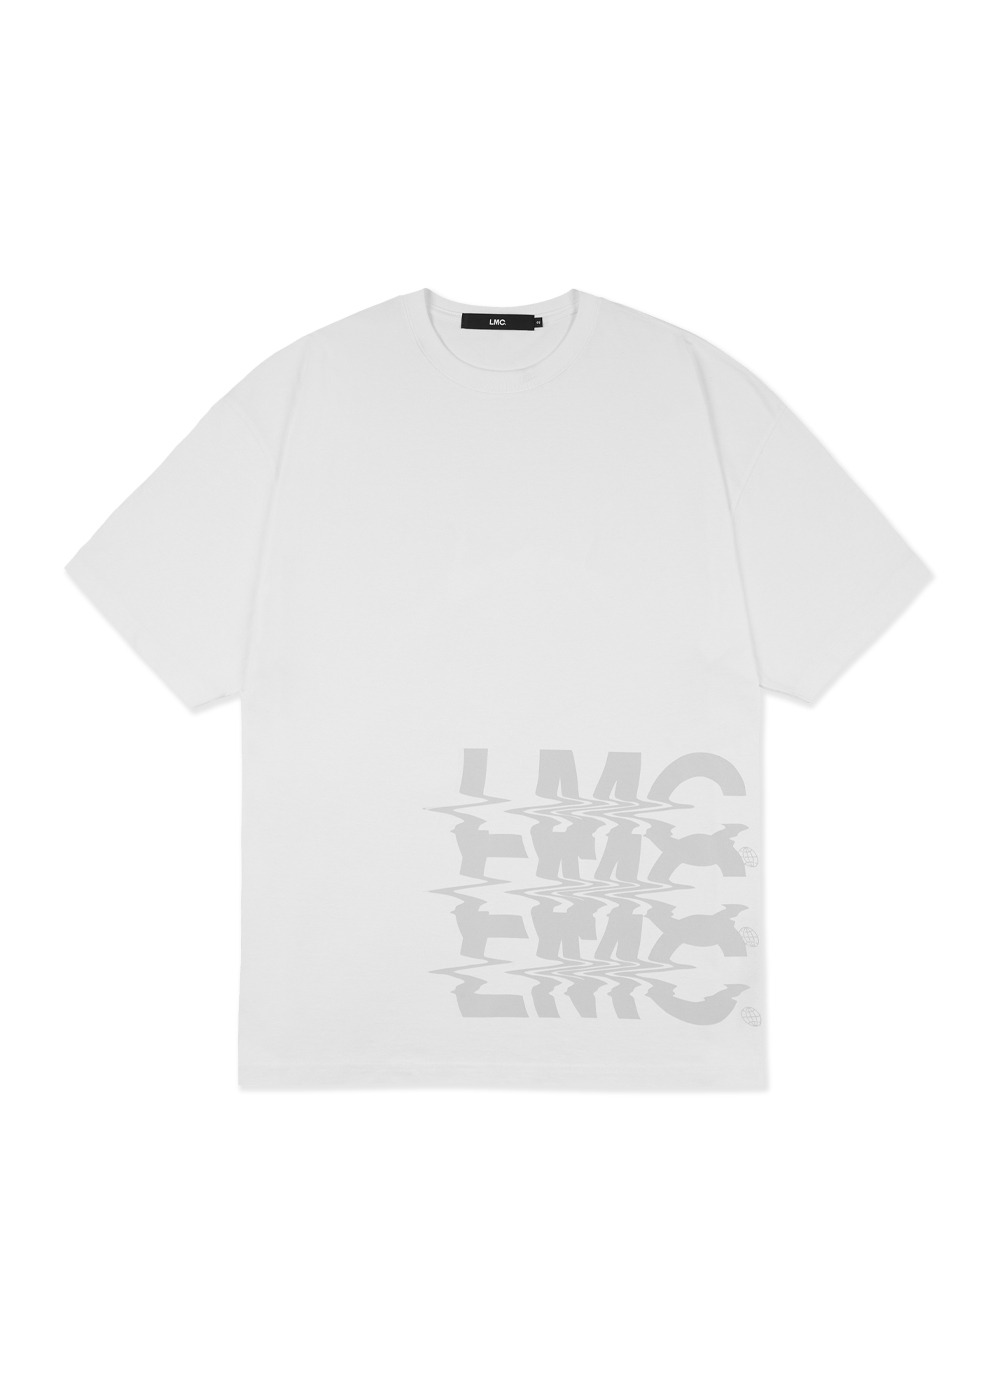 LMC NOISE OVERSIZED TEE white